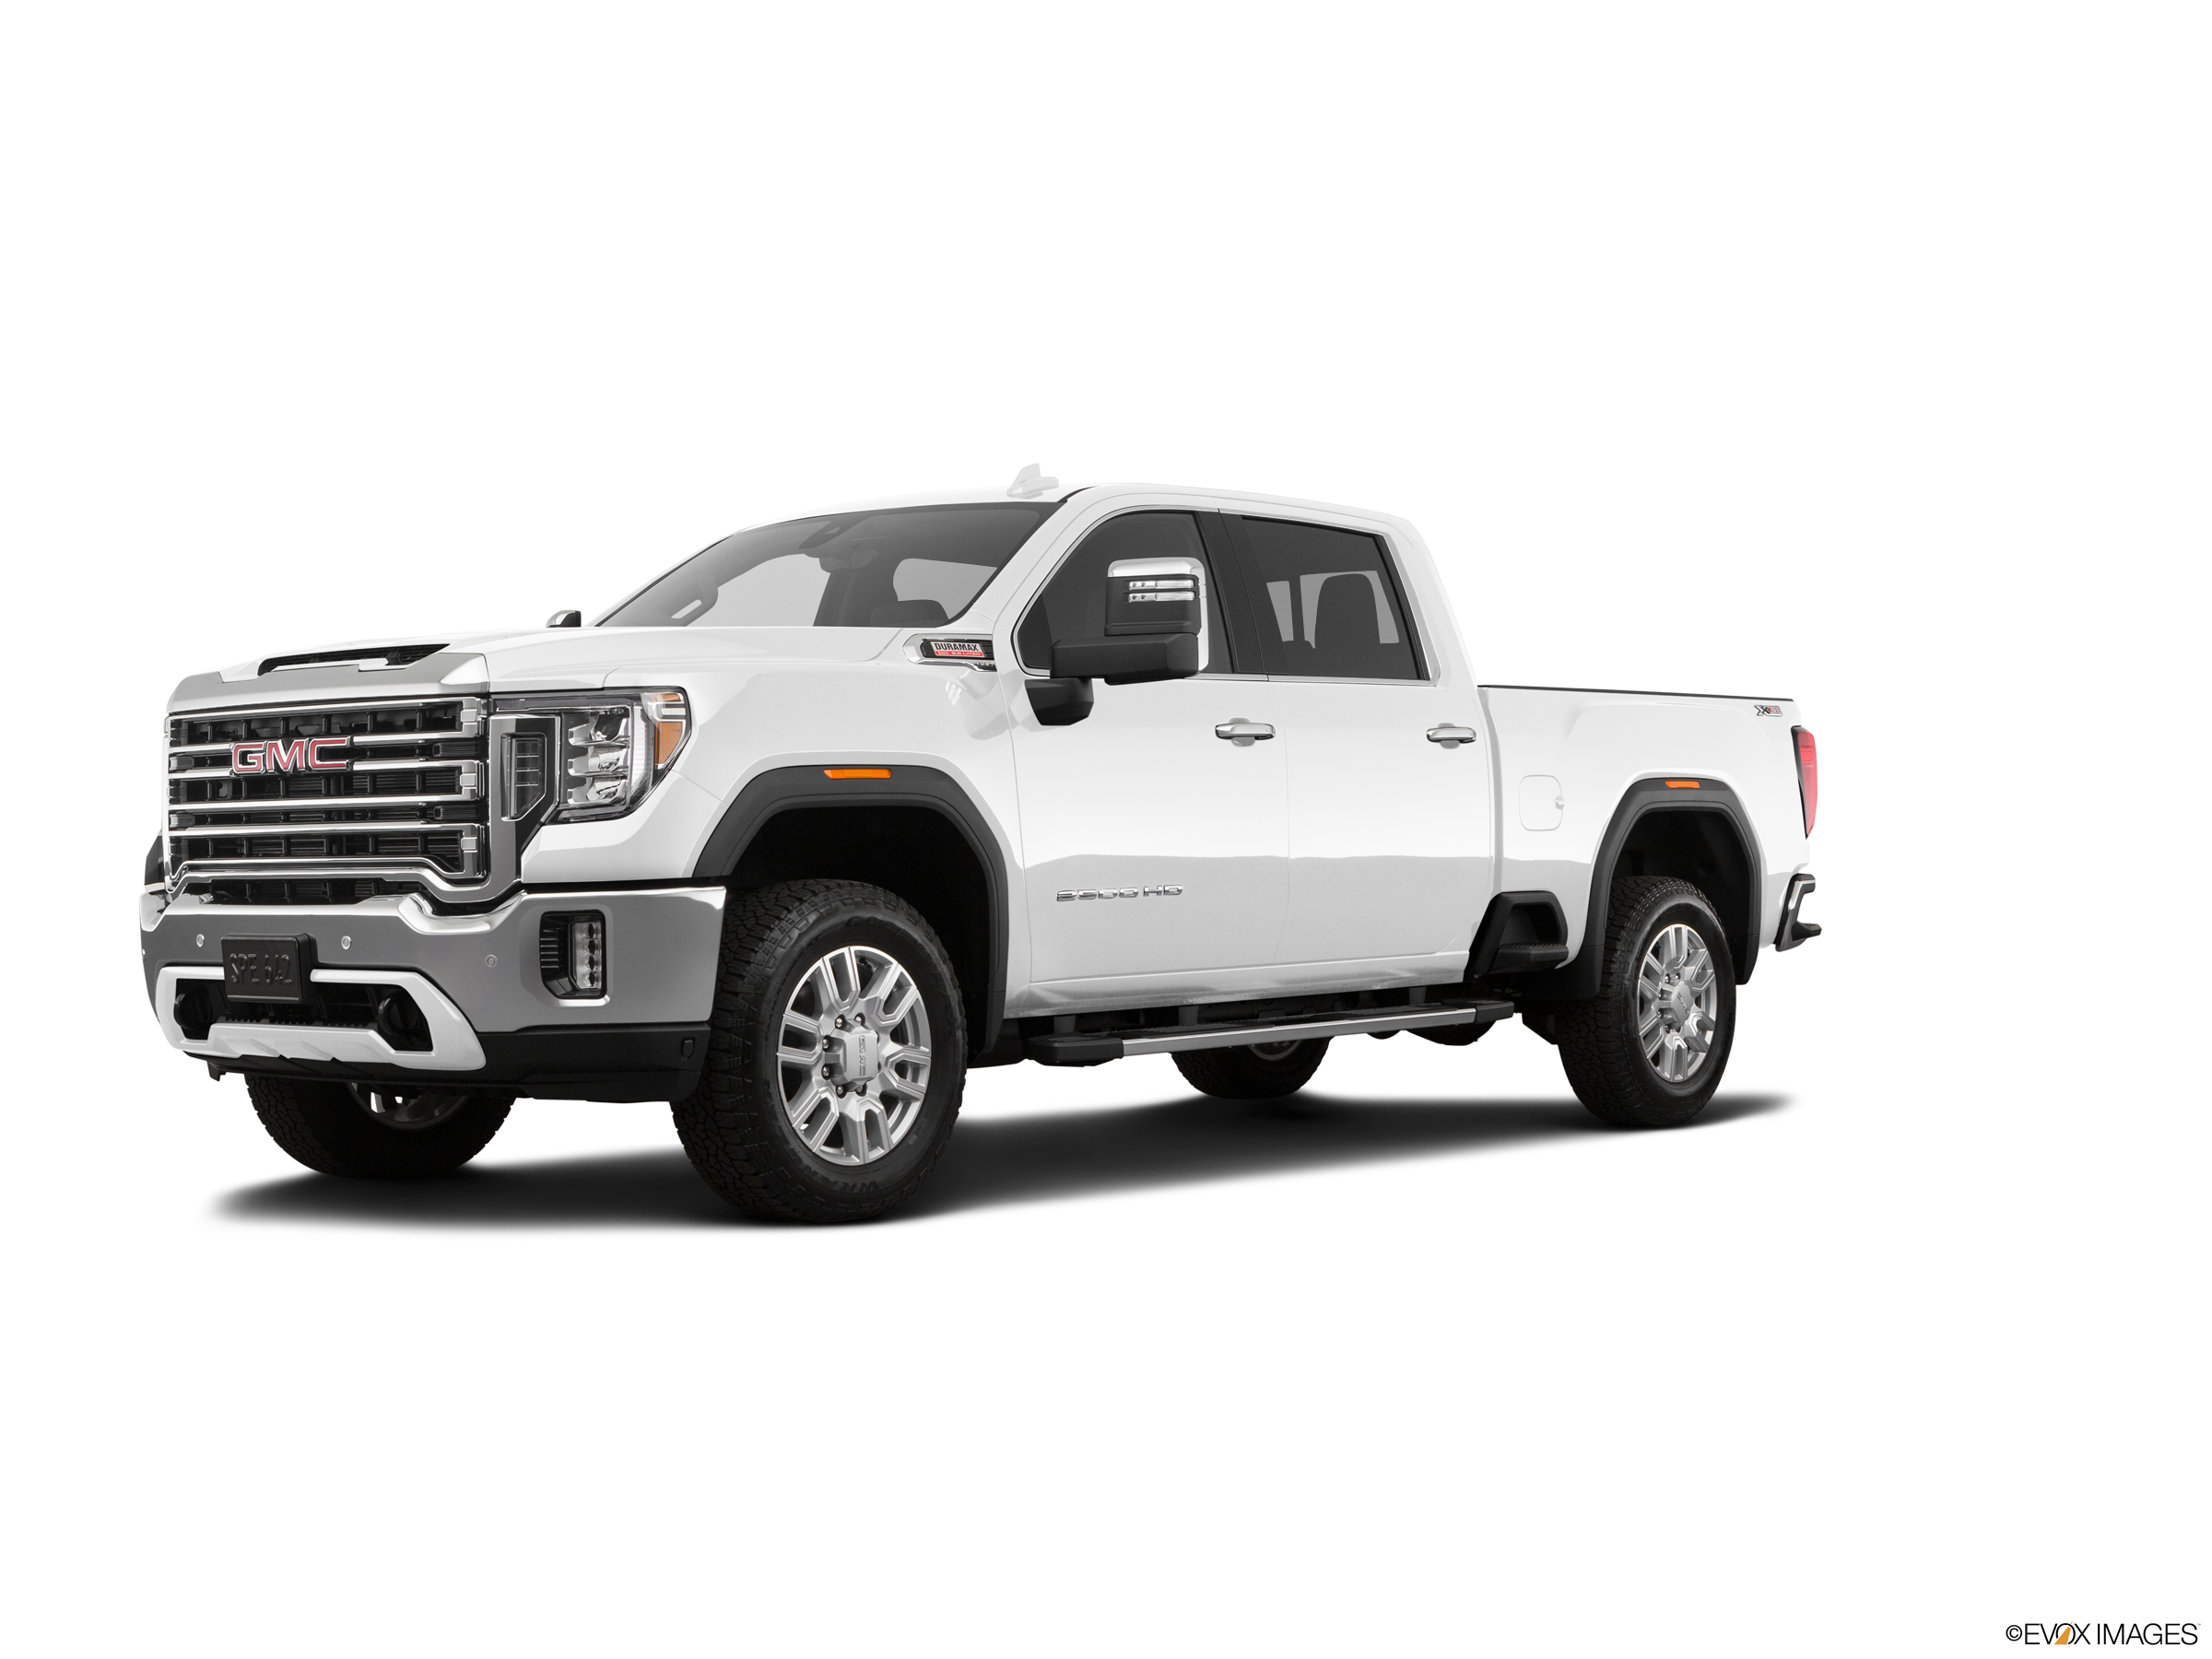 2020 gmc sierra 2500 prices reviews pictures kelley blue book 2020 gmc sierra 2500 prices reviews